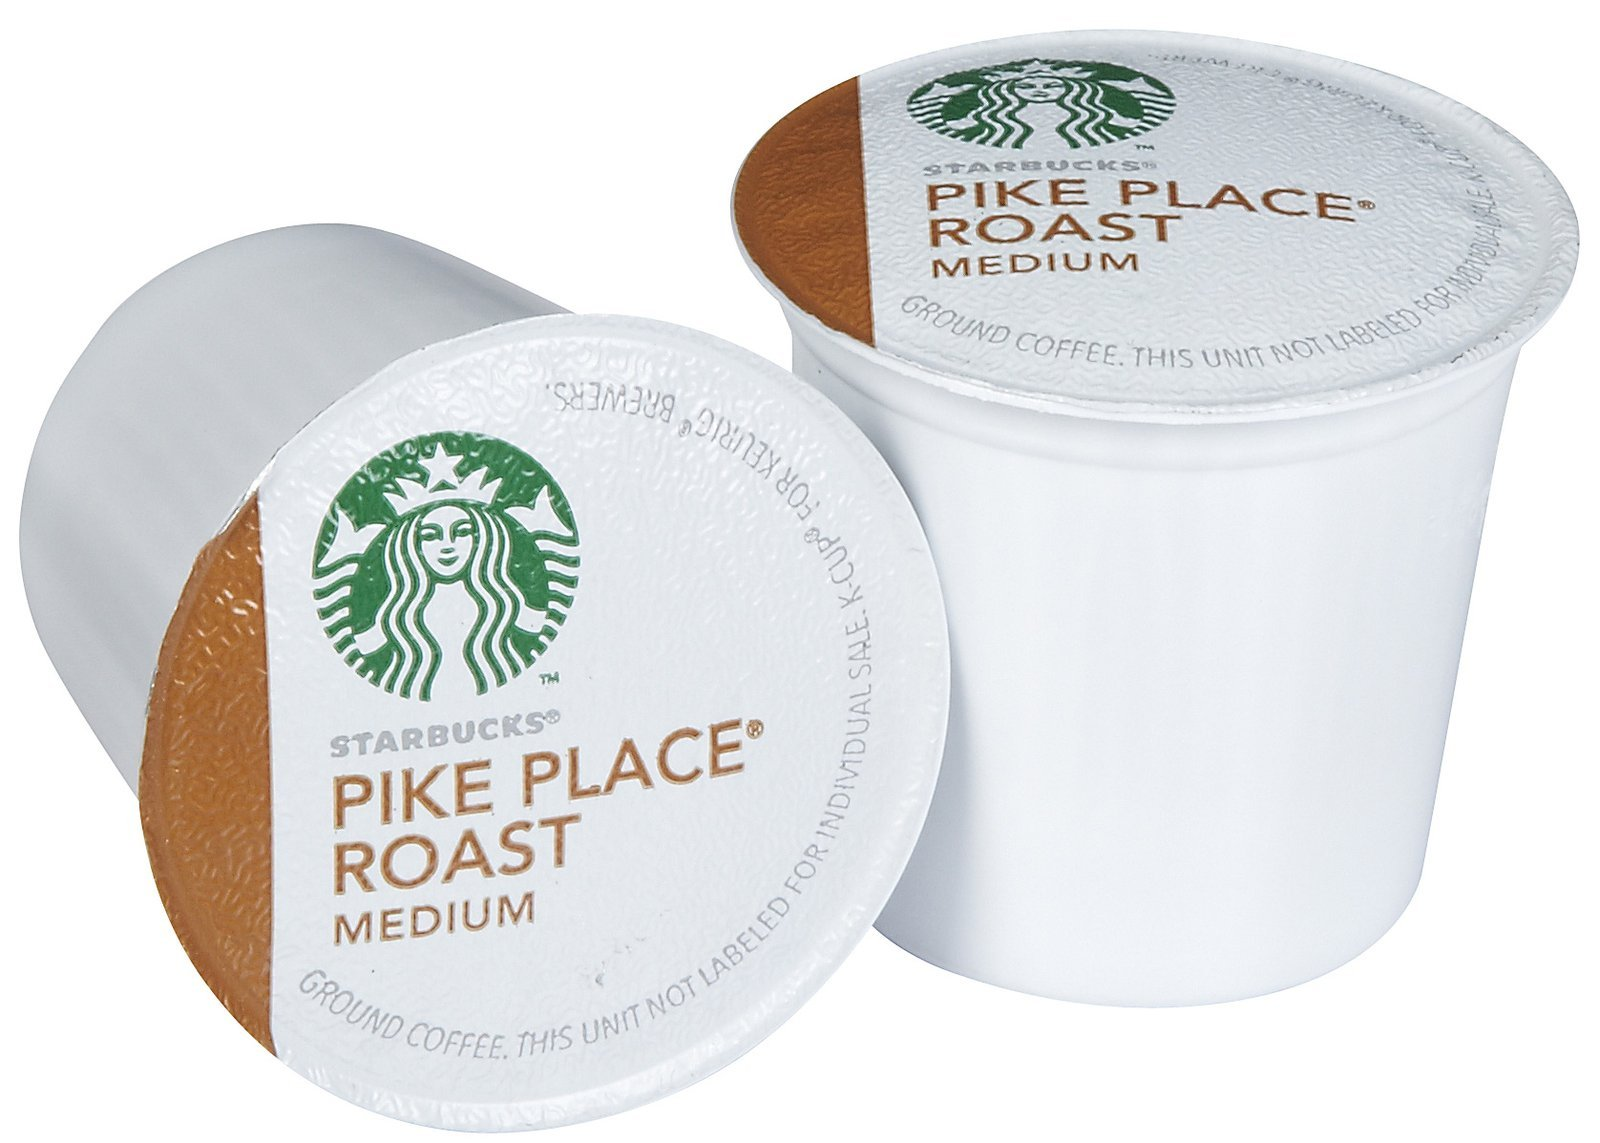 Starbucks Pike Place Medium Roast Single Cup Coffee for Keurig Brewers, 4 Boxes of 24 (96 Total K-Cup pods) by Starbucks